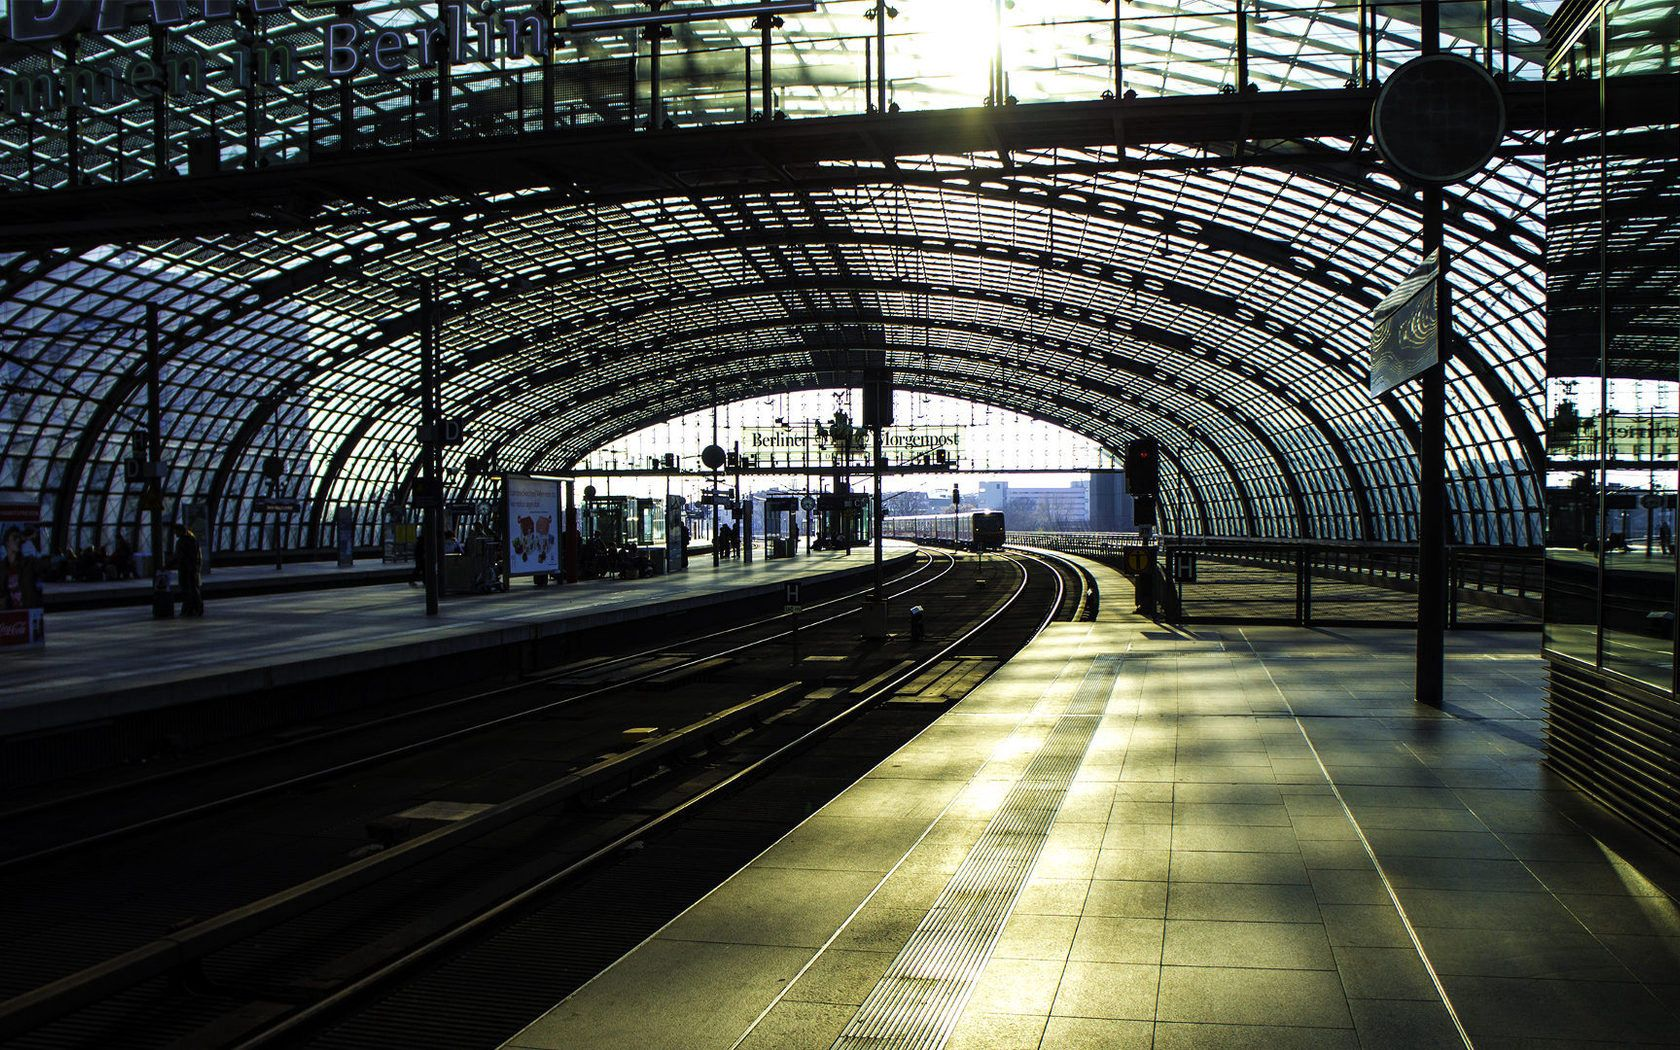 117108 download wallpaper Cities, Trains, Metro, Subway, Station, Rails screensavers and pictures for free